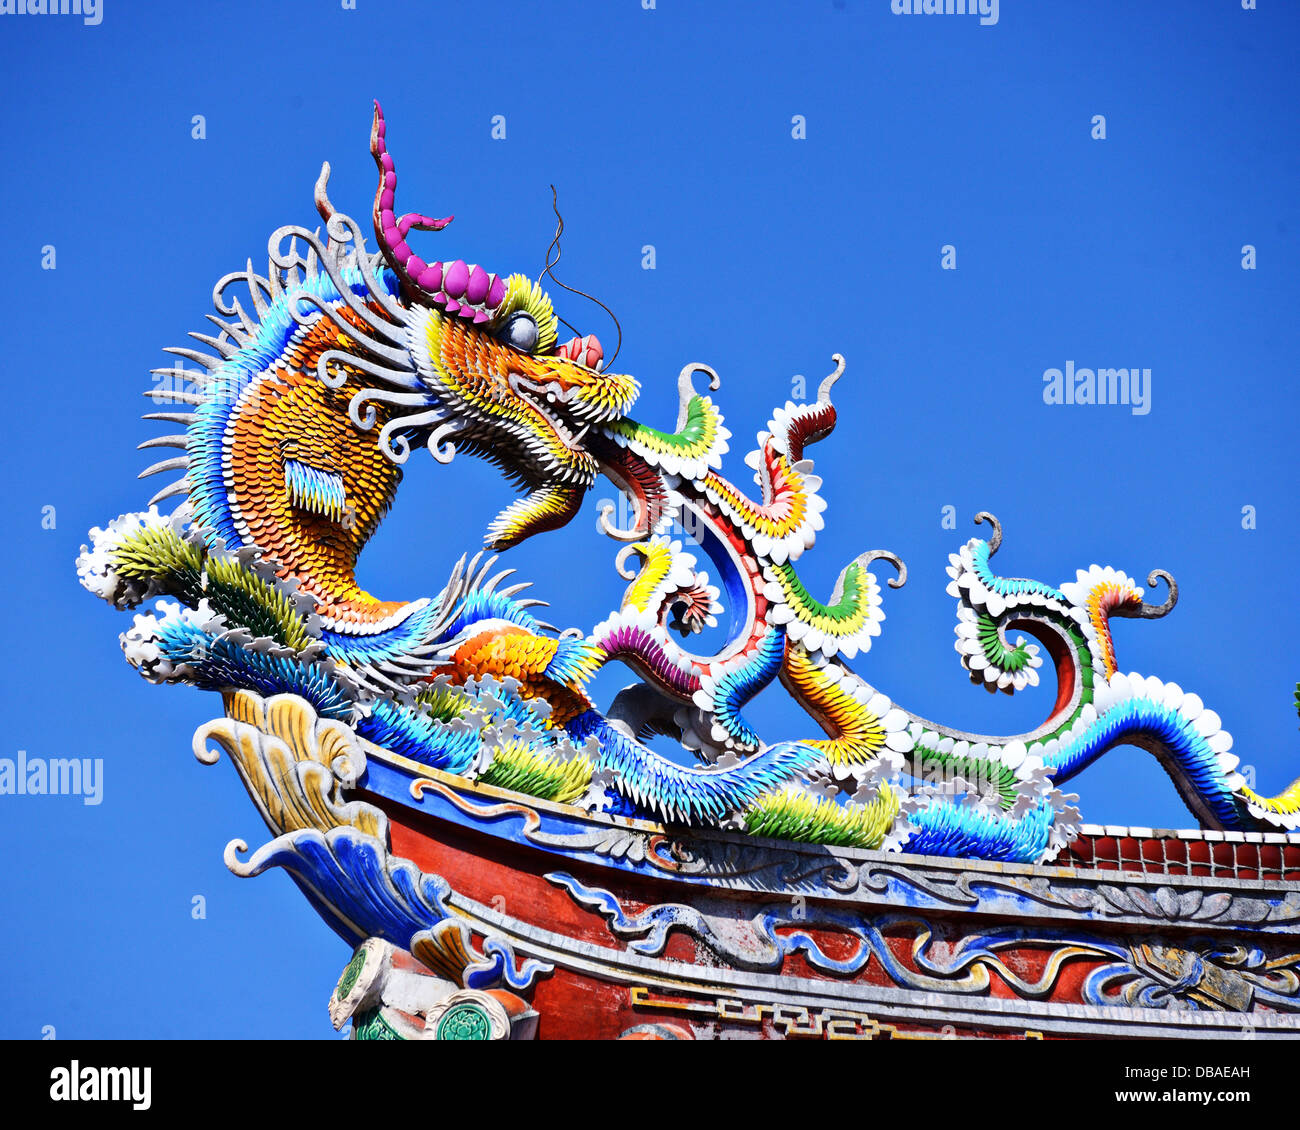 Ornate Chinese Temple detail in the sky. - Stock Image